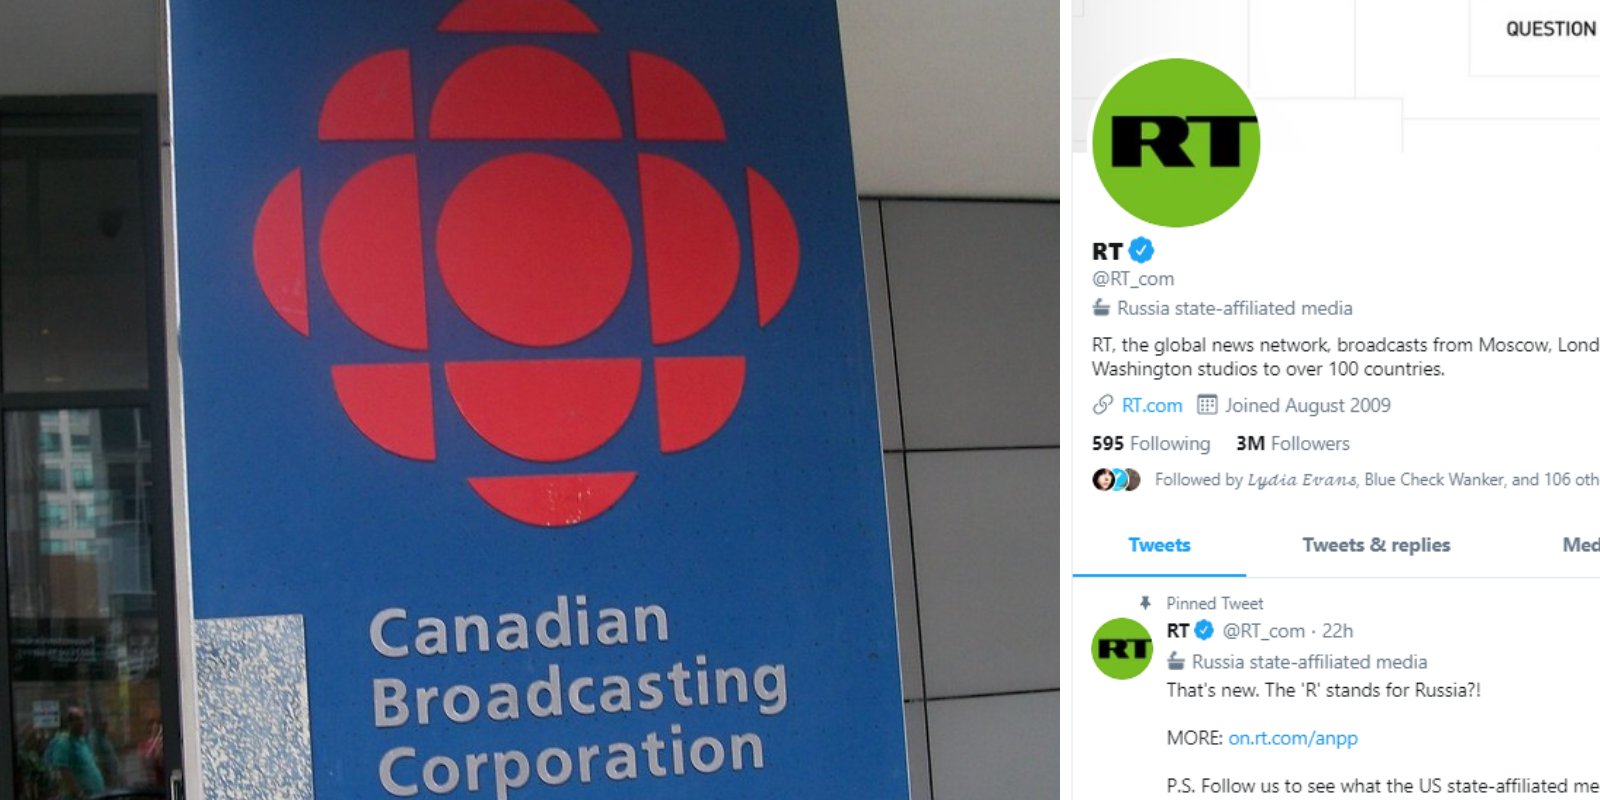 Twitter decided to label state-affiliated media, but not the CBC. Why?